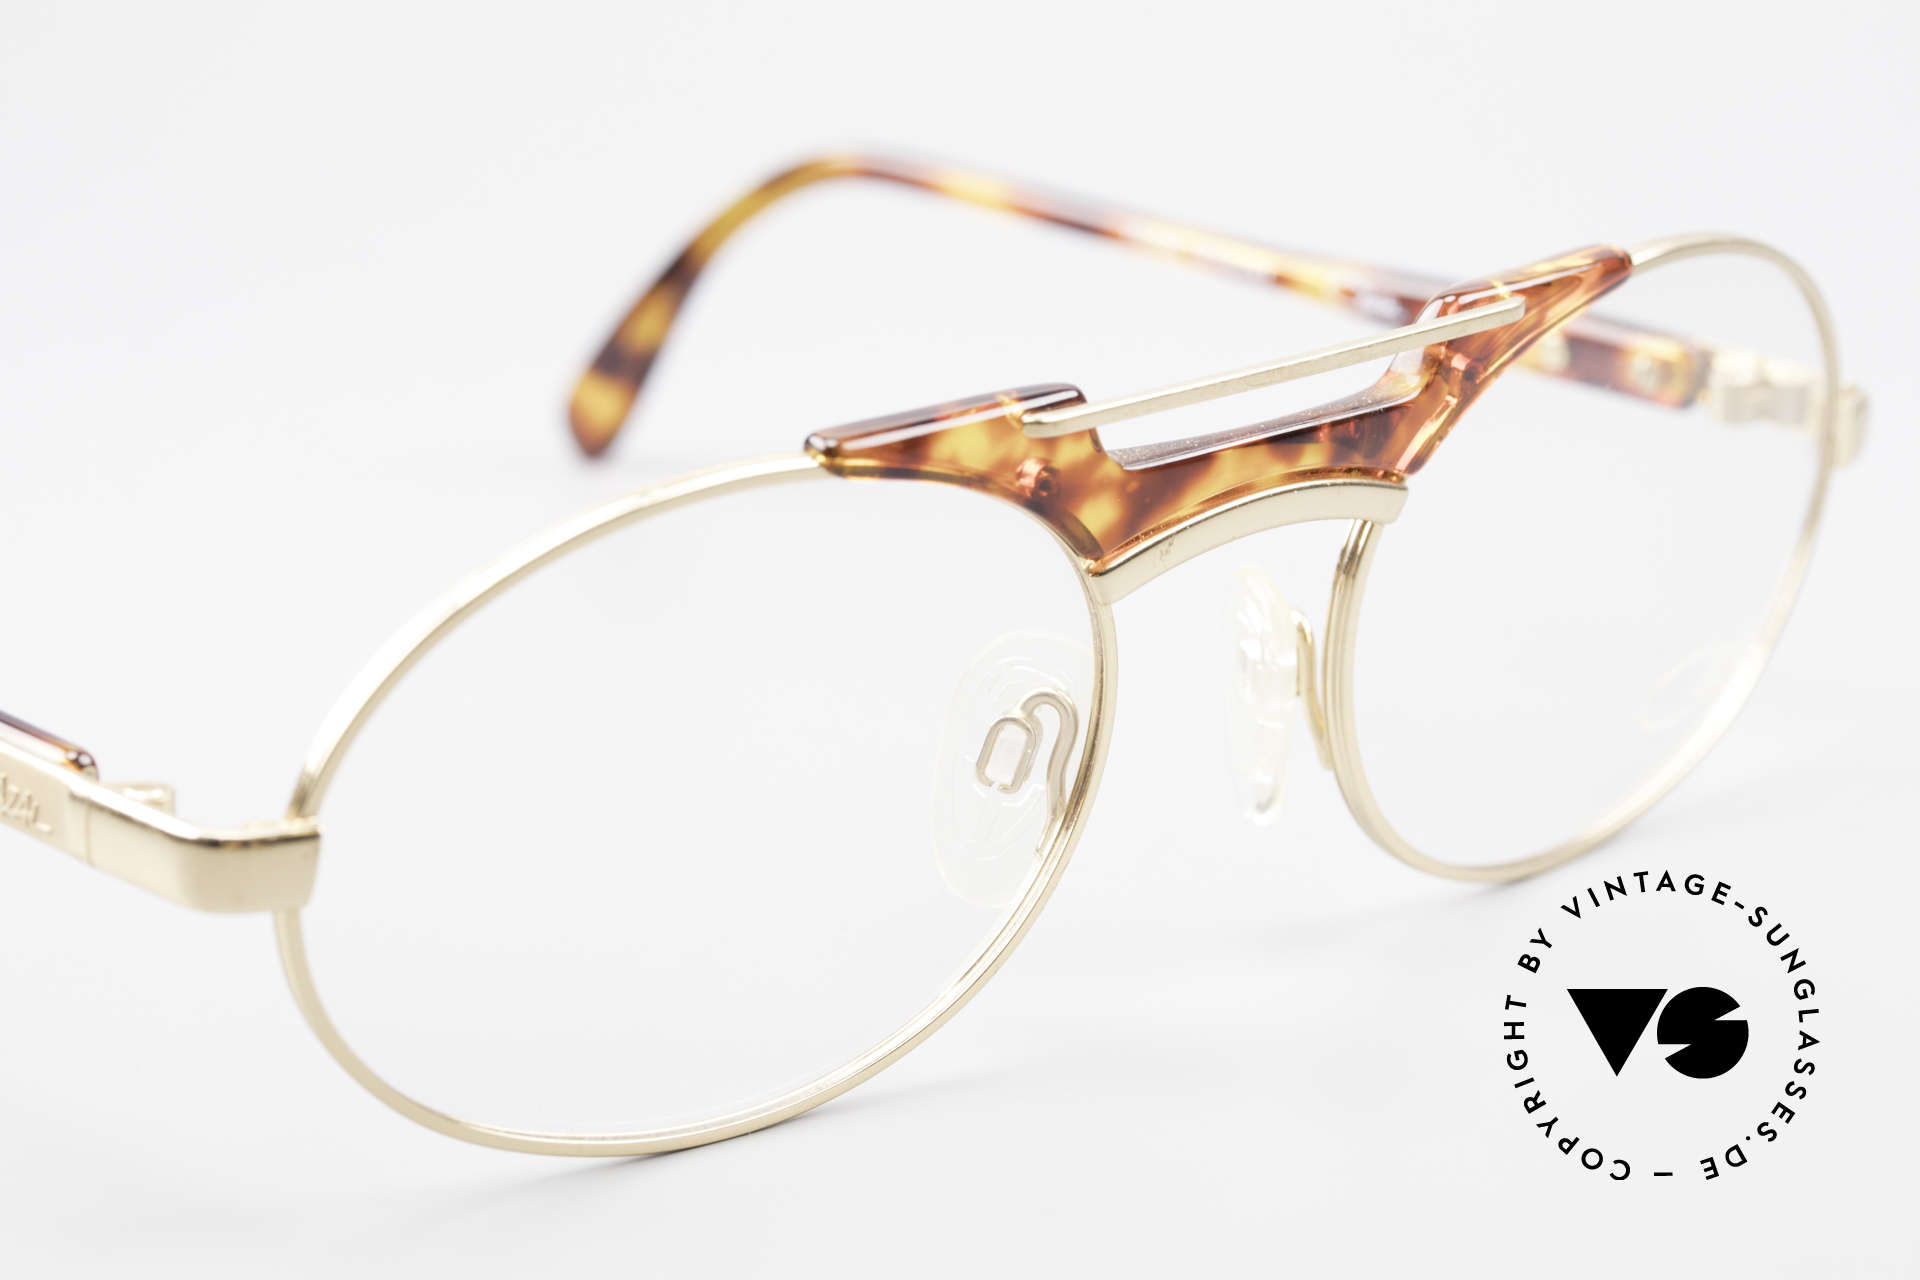 Cazal 749 Oval Designer Frame Unisex, NO RETRO specs, but a 25 years old ORIGINAL!, Made for Men and Women